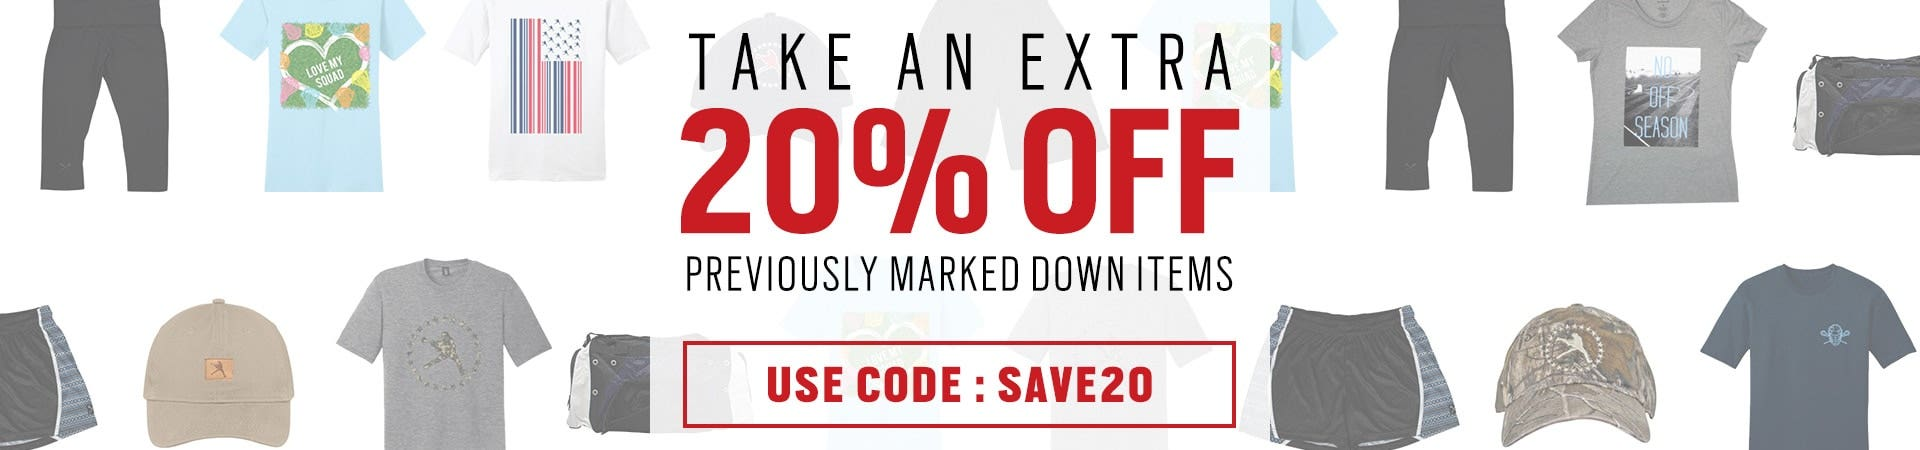 EXTRA 20% OFF SALE ITEMS (USE CODE SALE20)